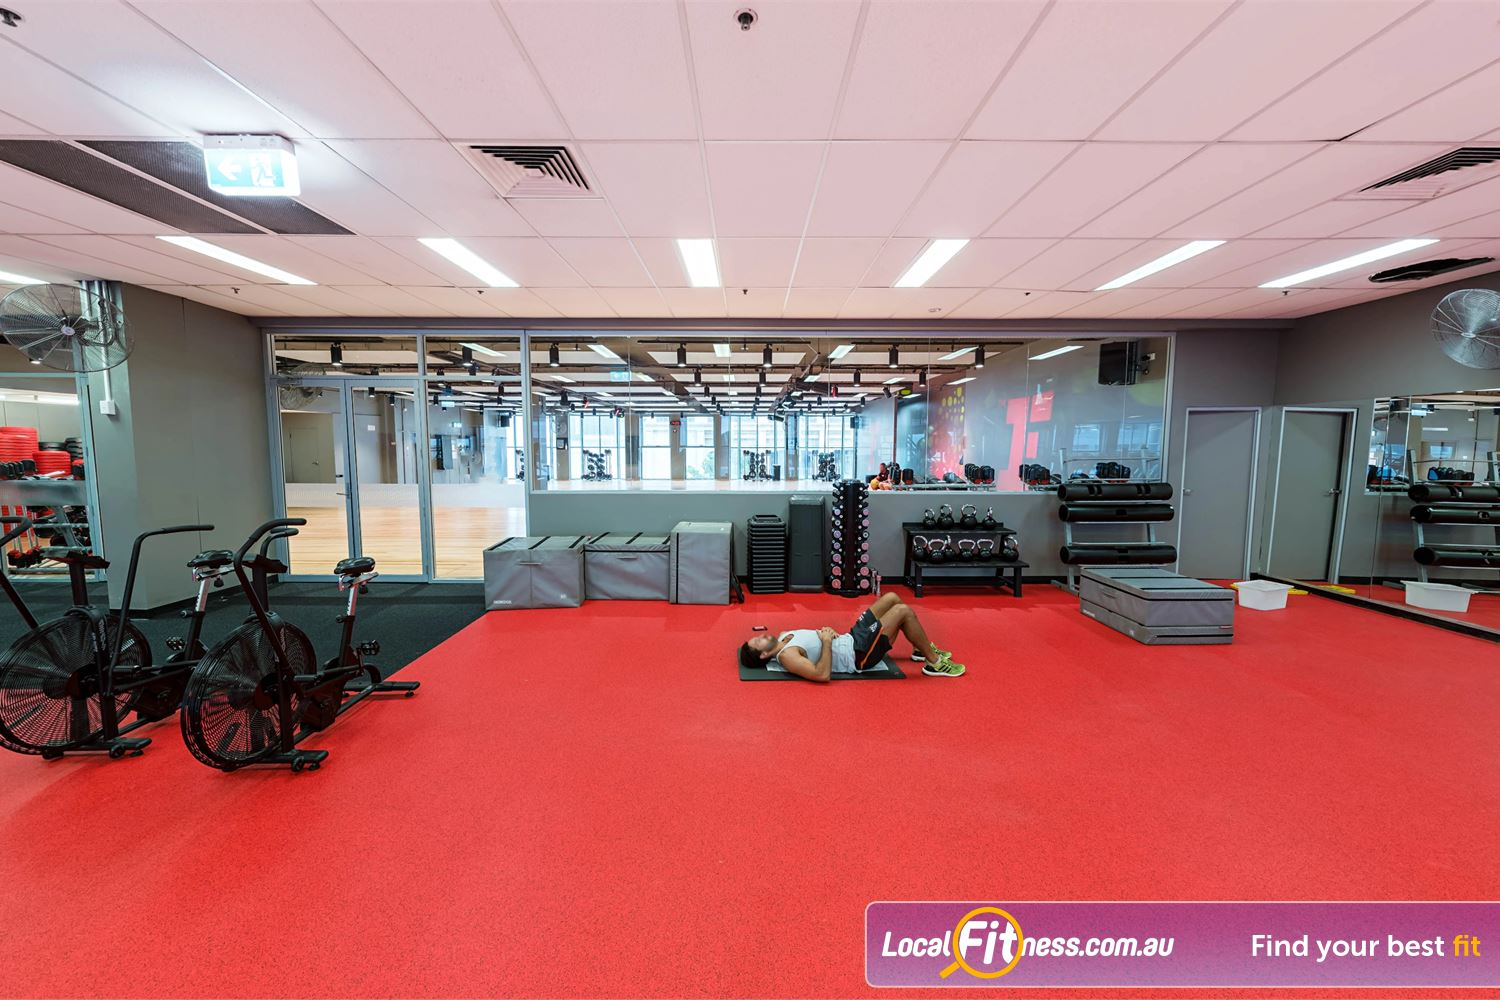 Fitness First Platinum Spring St Bondi Junction Fitness First Bondi provides multiple freestyle training area with airdyne bikes, kettlebells, plyo boxes and more.